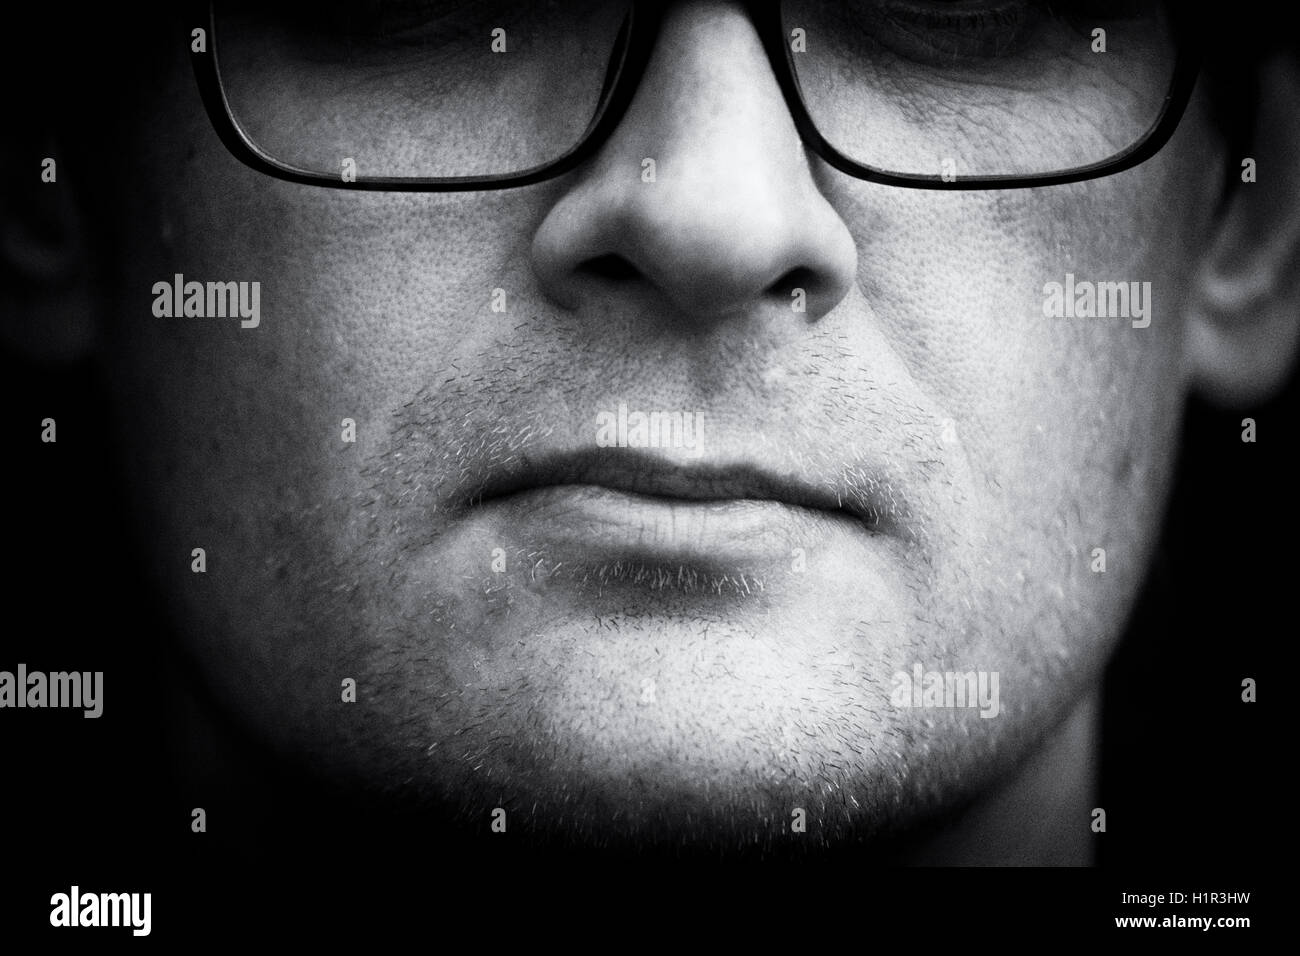 450b9ffbb6b0 portrait of a man with glasses and eyes not visible in black and white